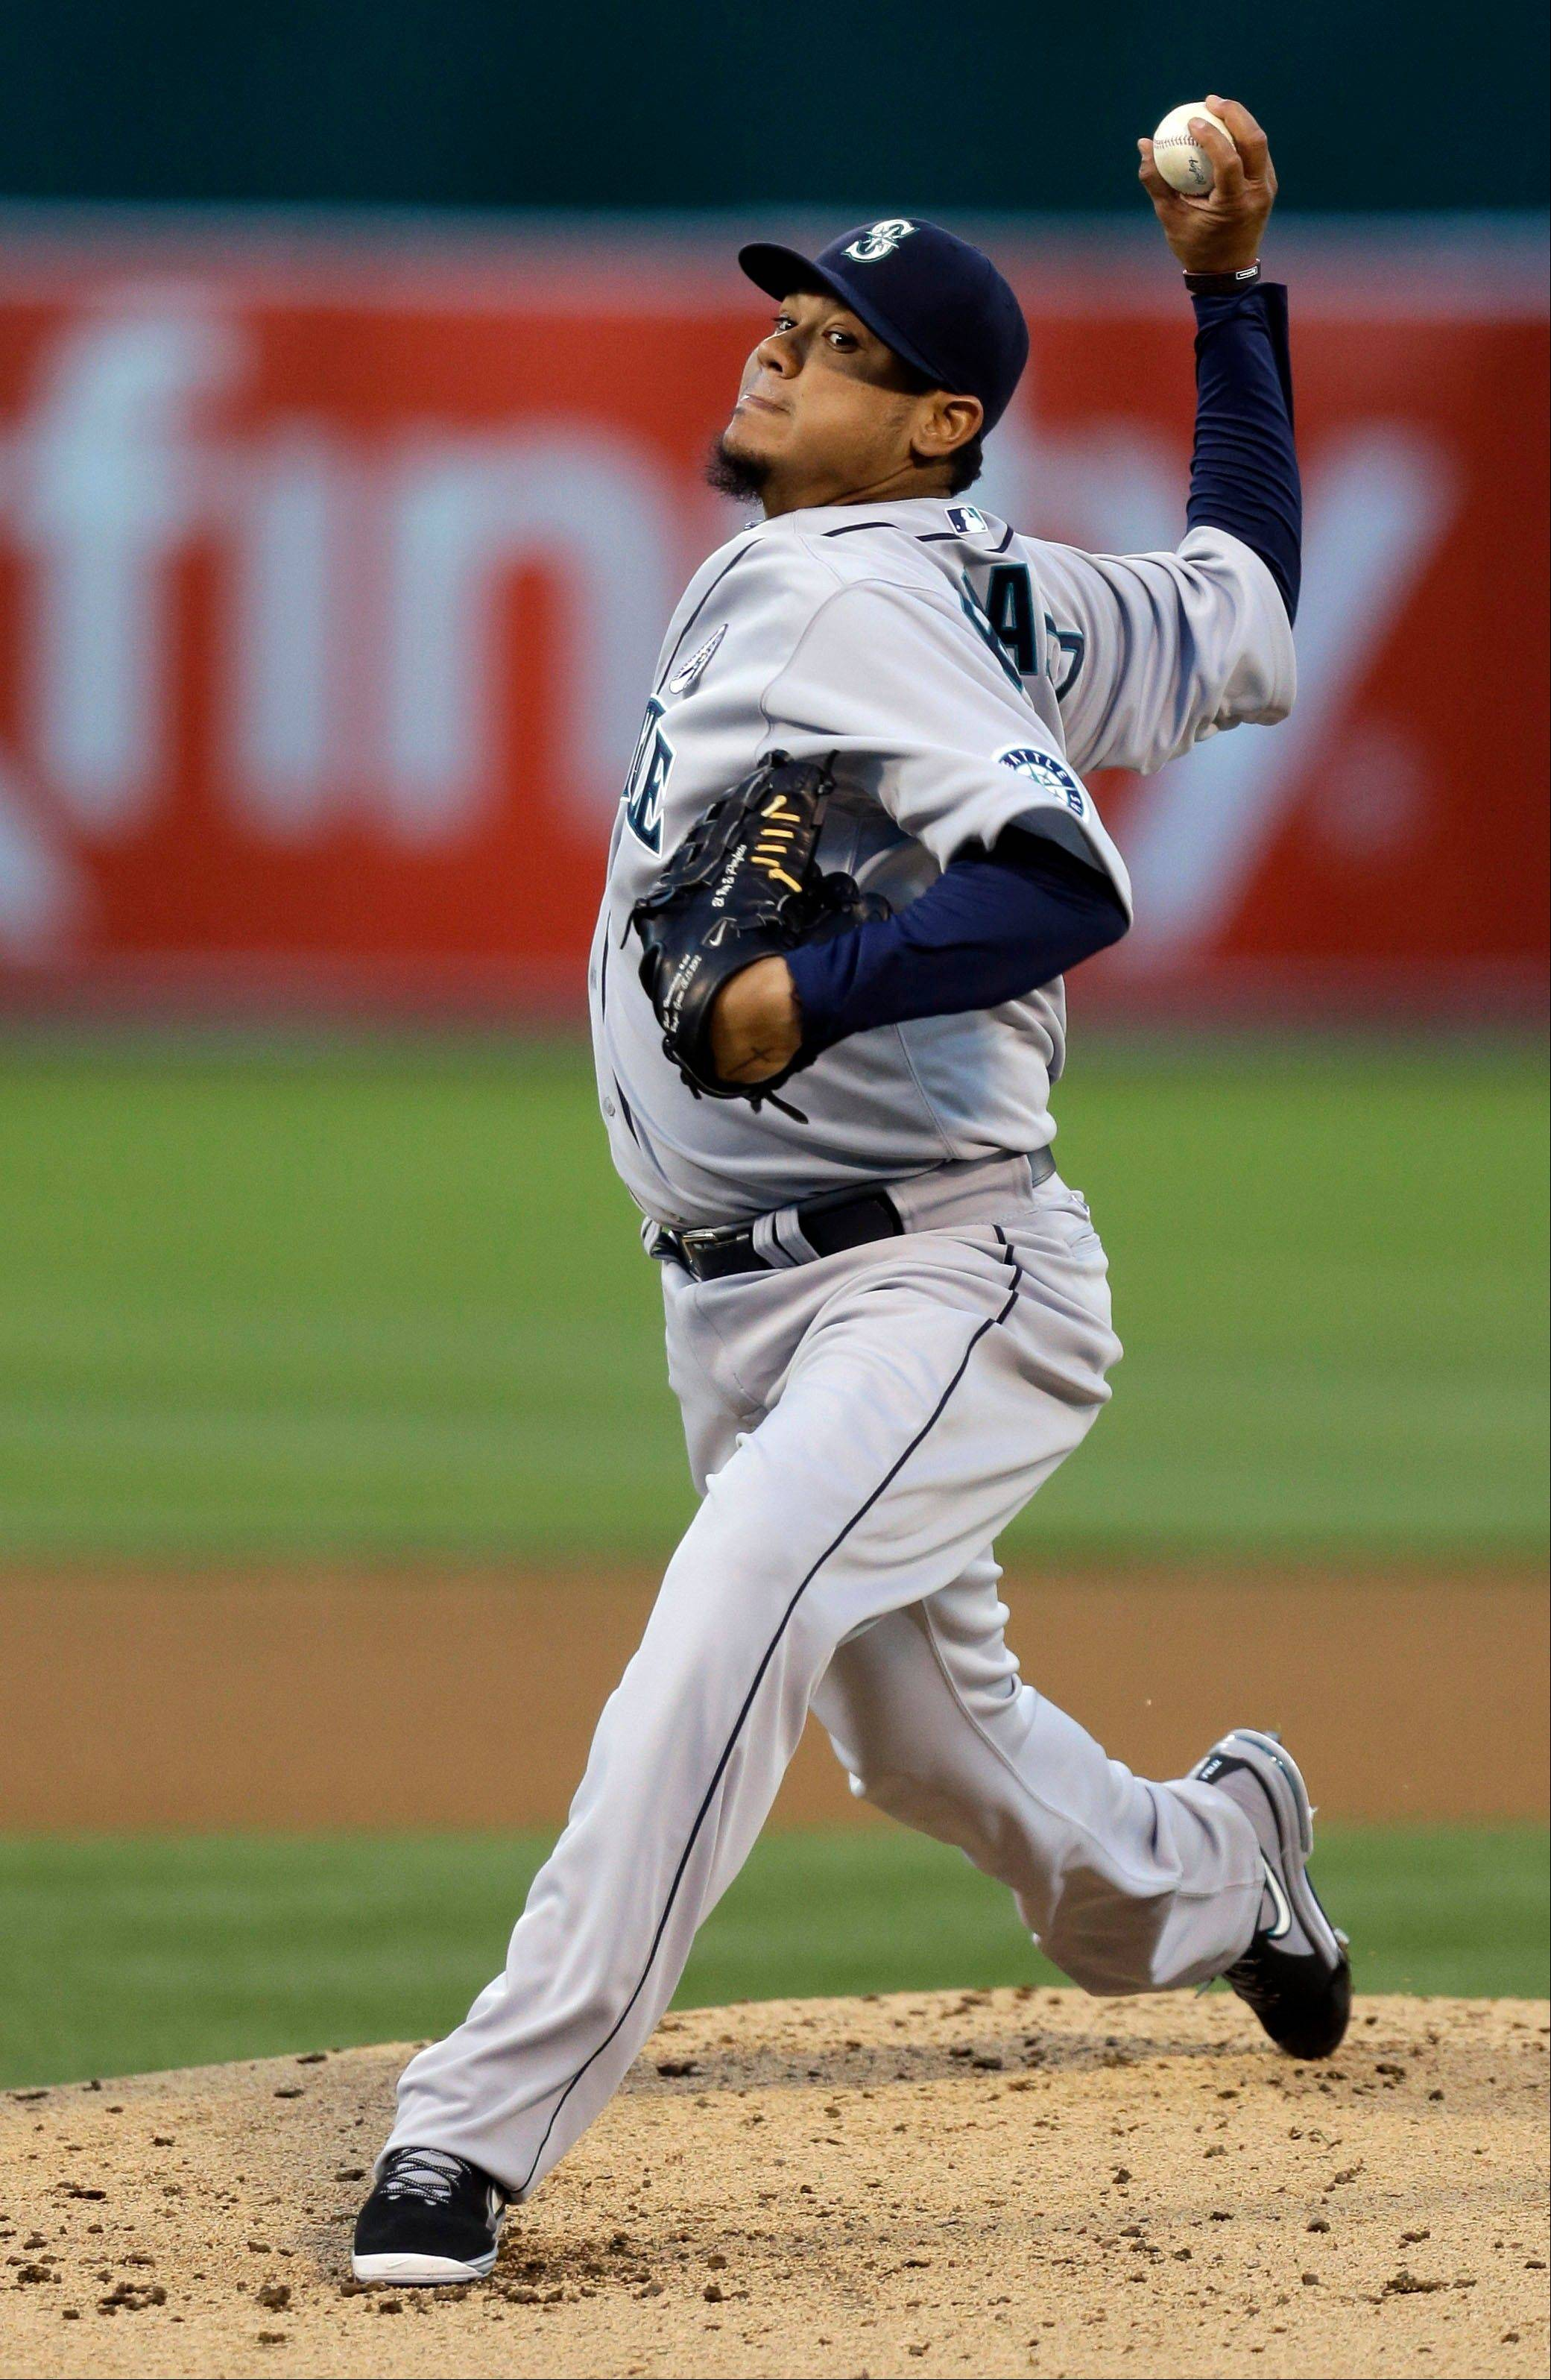 The Mariners' Felix Hernandez works against the Athletics in the first inning Monday in Oakland.